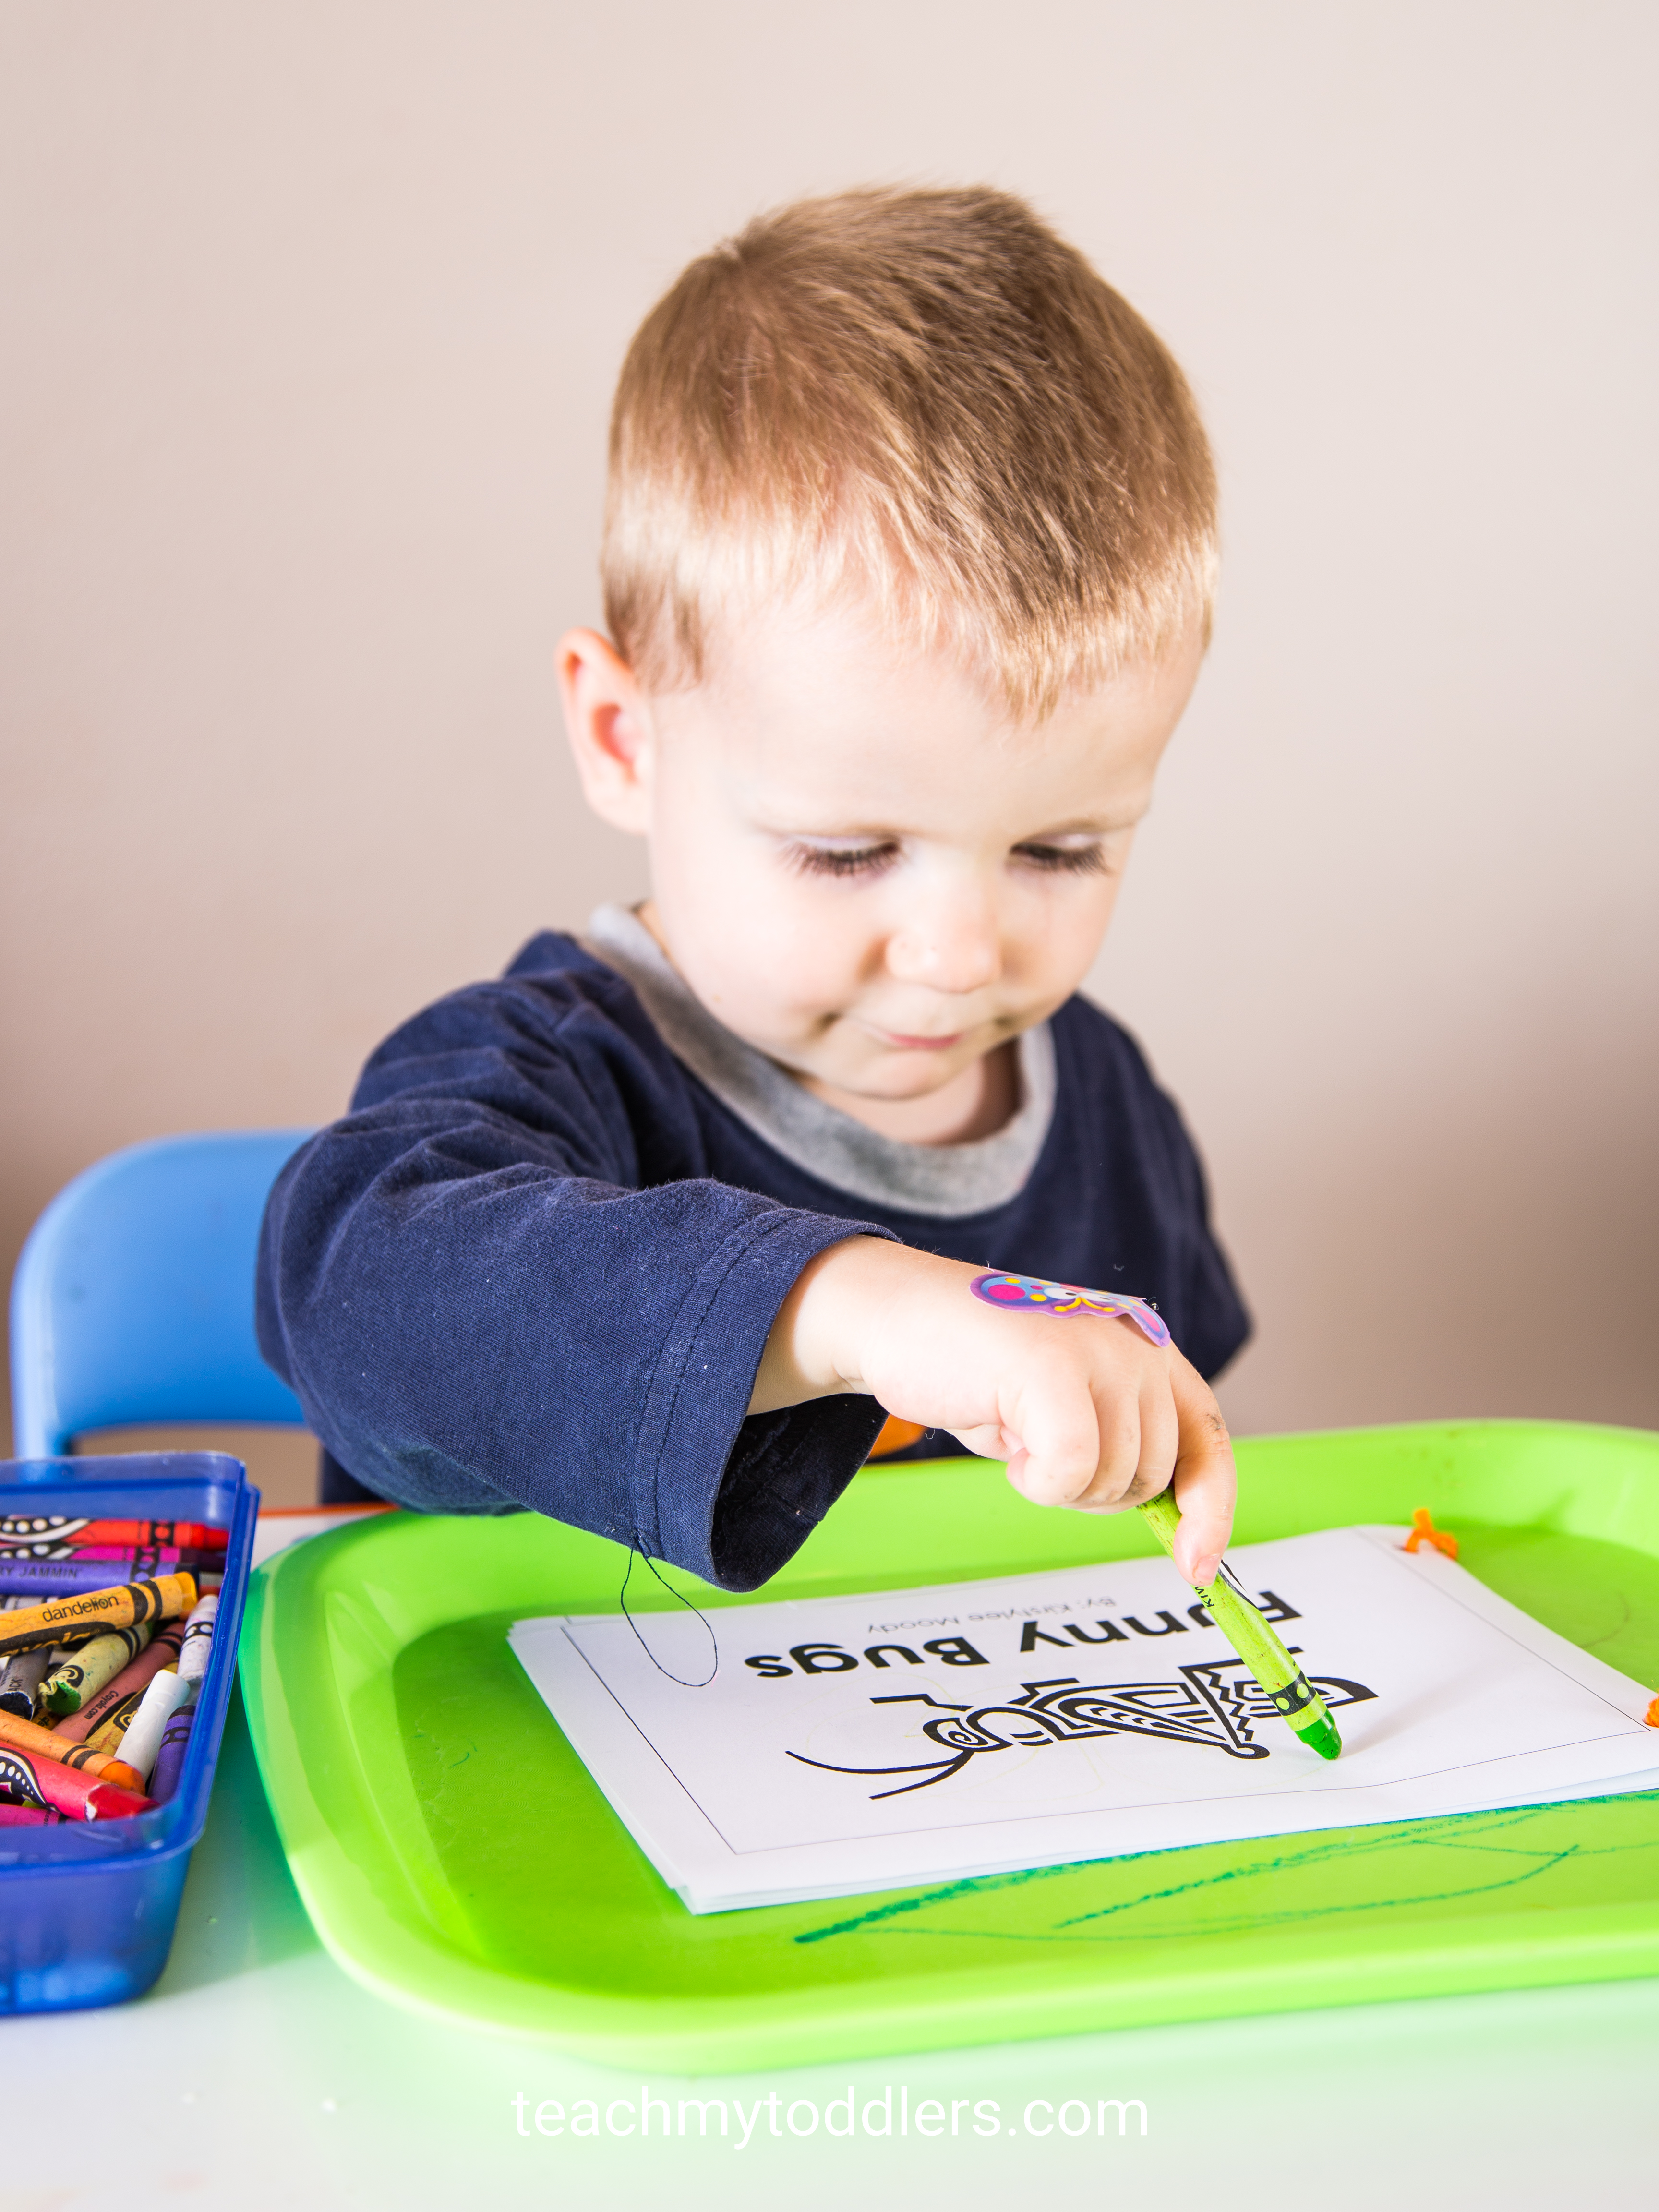 What a great idea in teaching toddlers about bugs using these fun trays